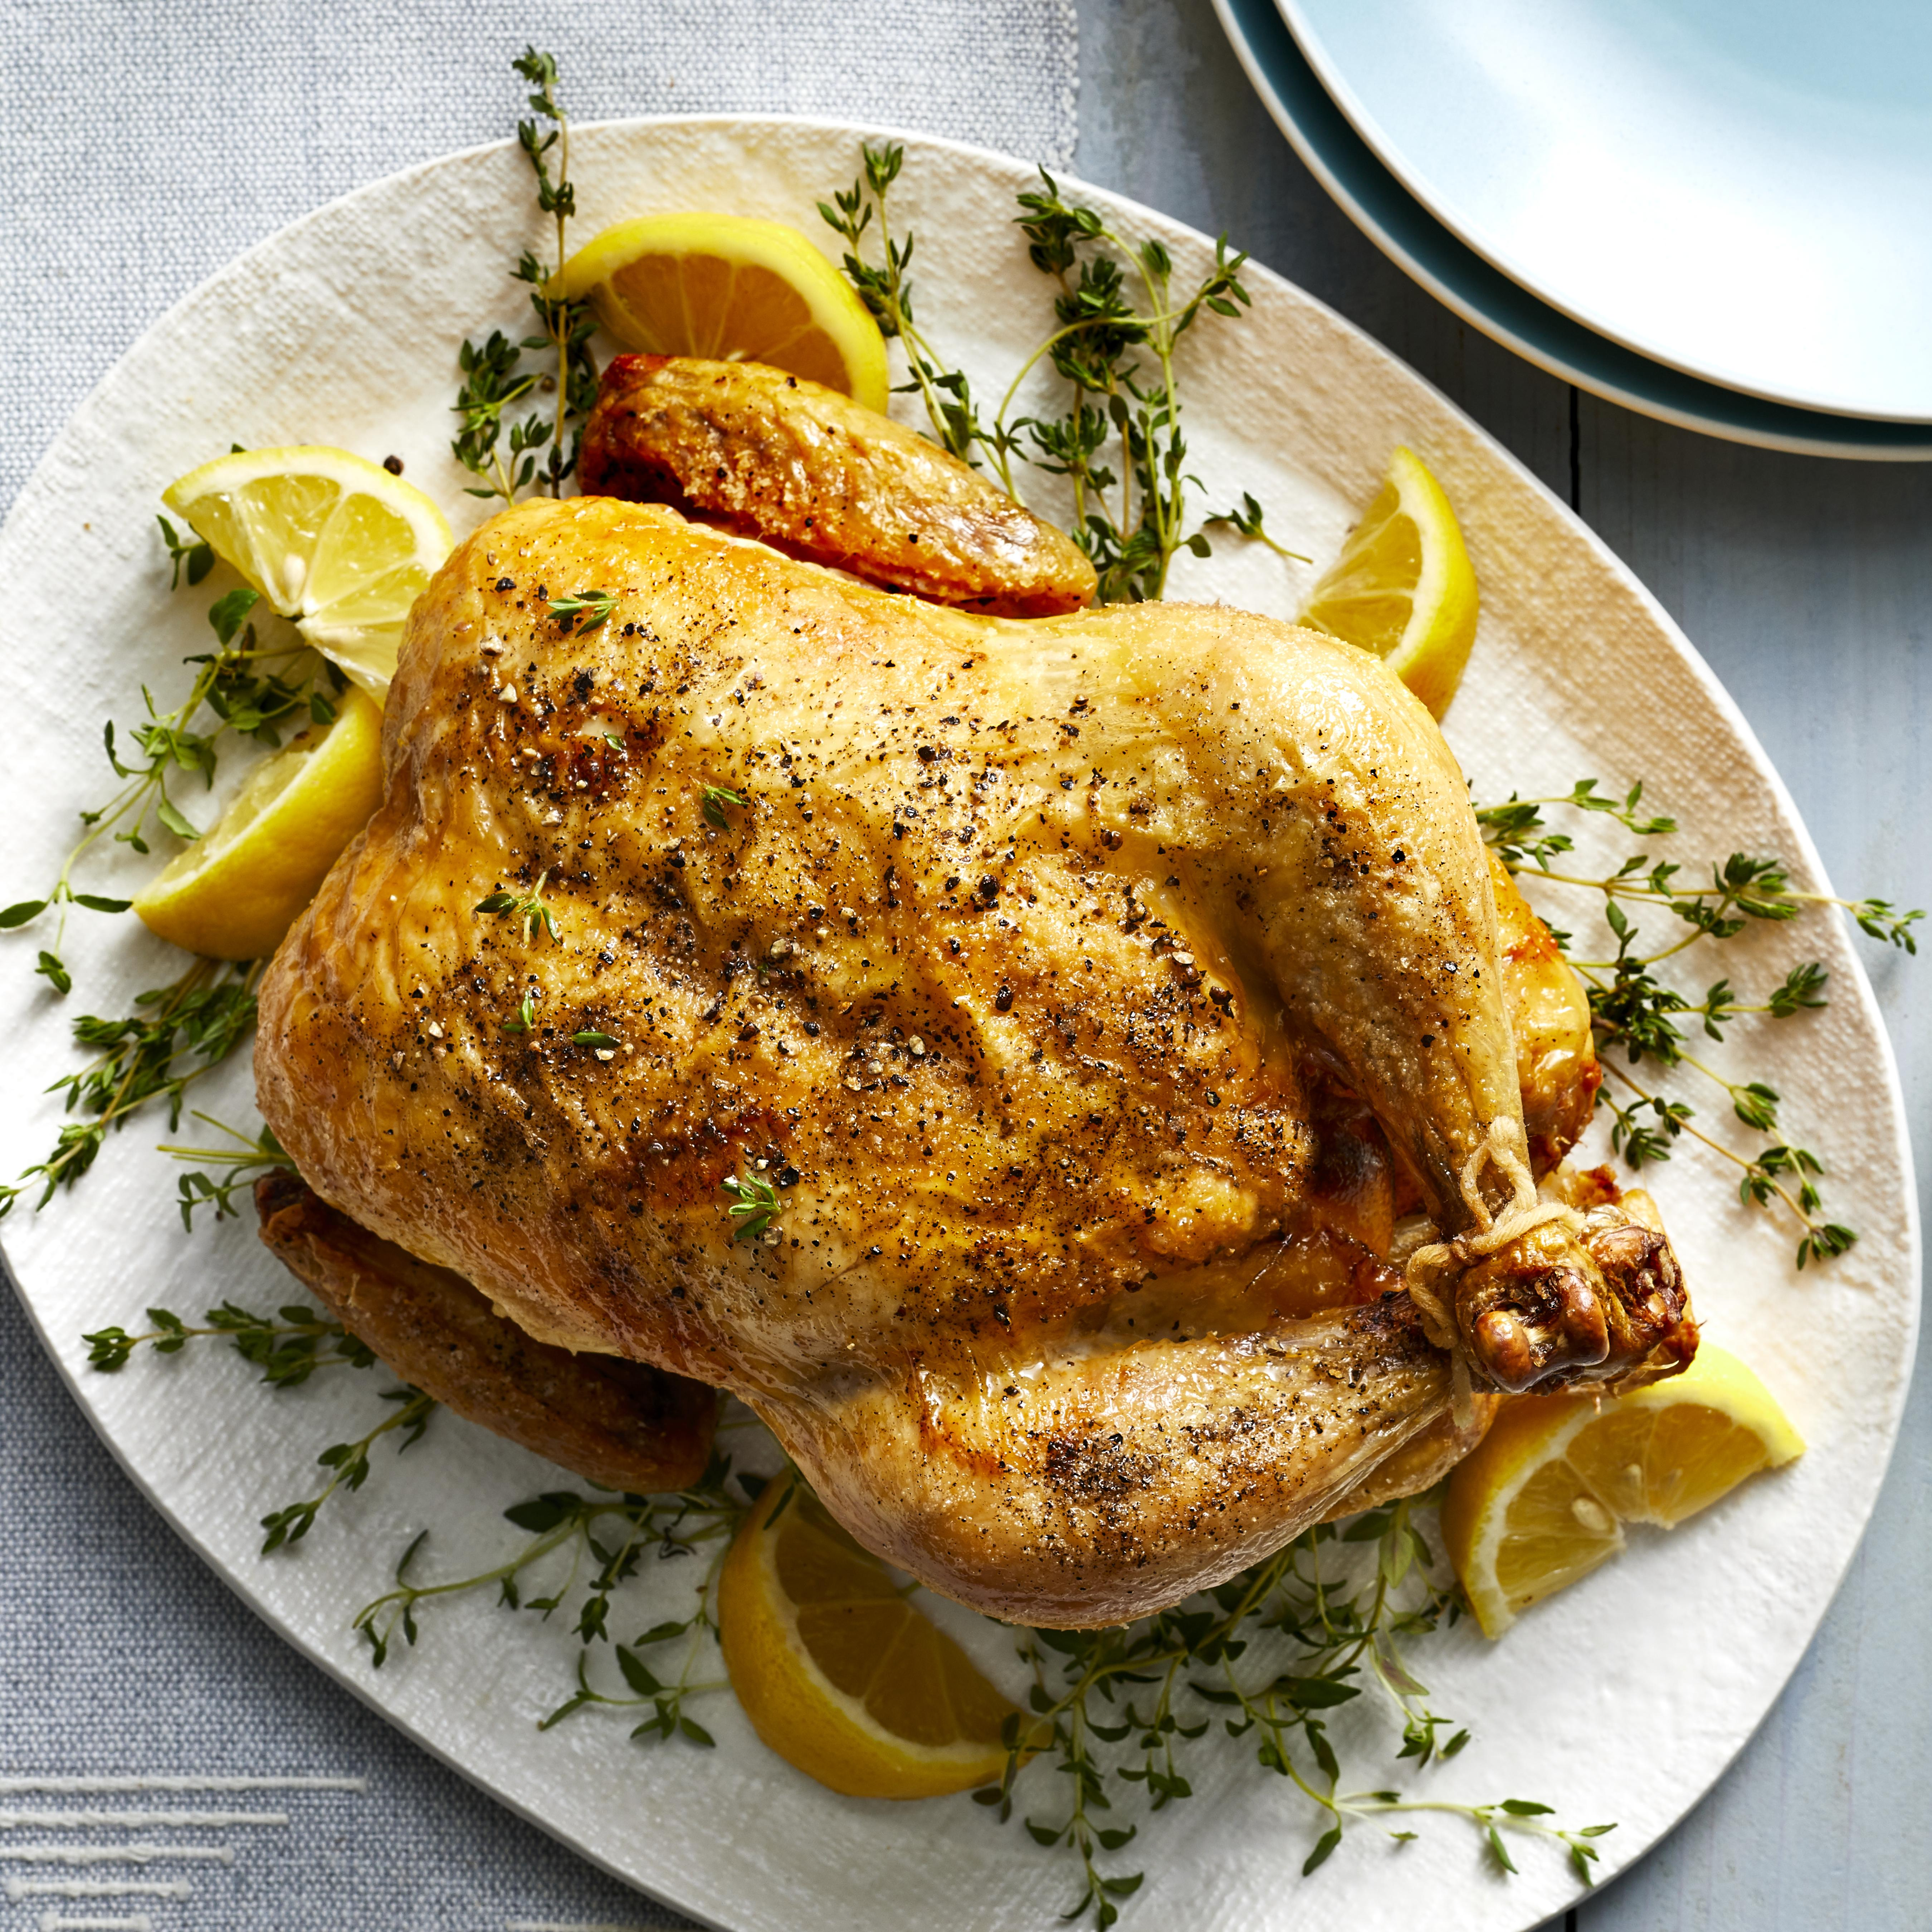 Replicate the flavor, lovely burnished skin and moist texture of a classic rotisserie chicken with this easy recipe for cooking a whole chicken in your air fryer. With just a handful of ingredients and 10 minutes of active time, you get a roast chicken with lemon and herbs that's a remarkable doppelganger for a deli chicken right after it comes out of the rotisserie—before it gets shriveled and dried out from sitting in the deli's holding case for hours. Serve this chicken with your favorite veggie sides for a healthy weeknight dinner or weekend supper. And if you're hosting a dinner party, cooking your main course in the air fryer is also a great way to free up oven space for casseroles, rolls and other dishes.